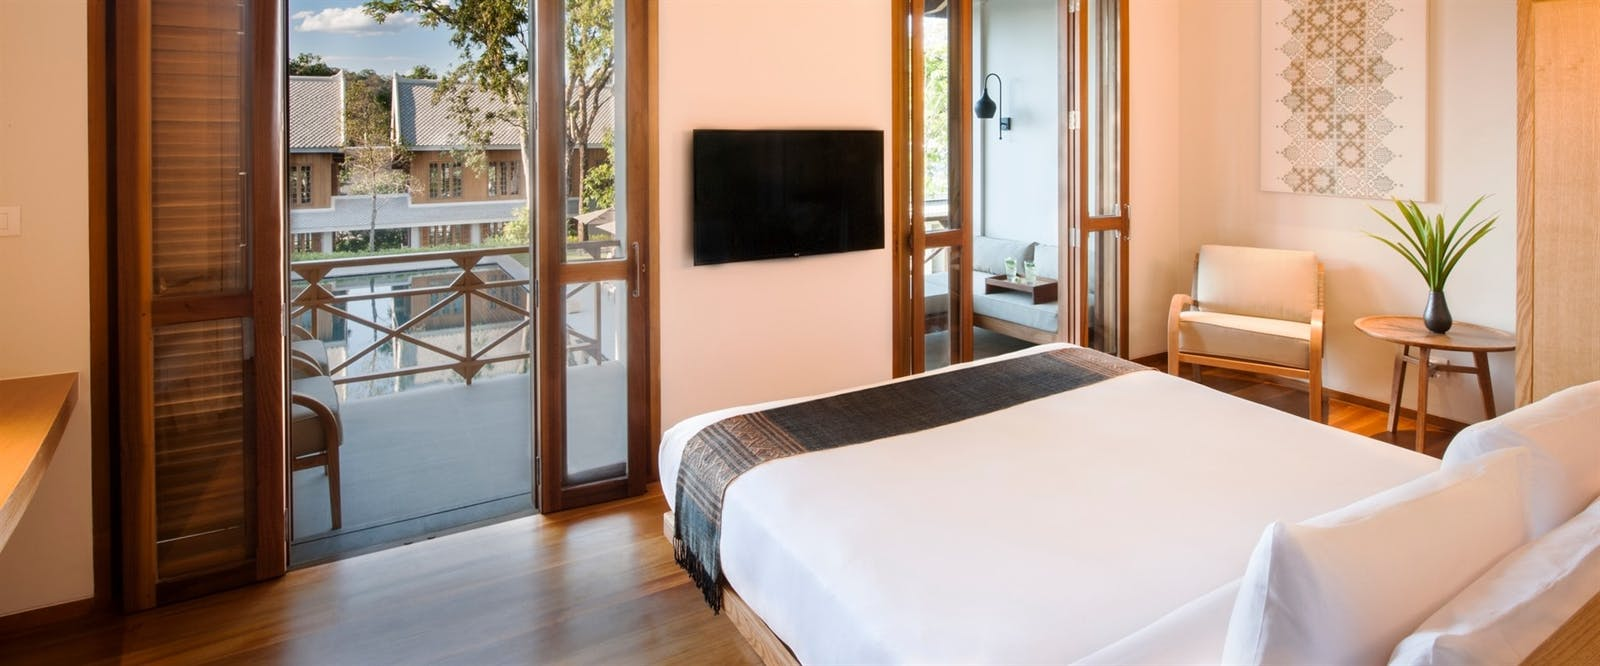 Avani luang prabang laos world renowned luxury hotel - Settha palace hotel swimming pool ...